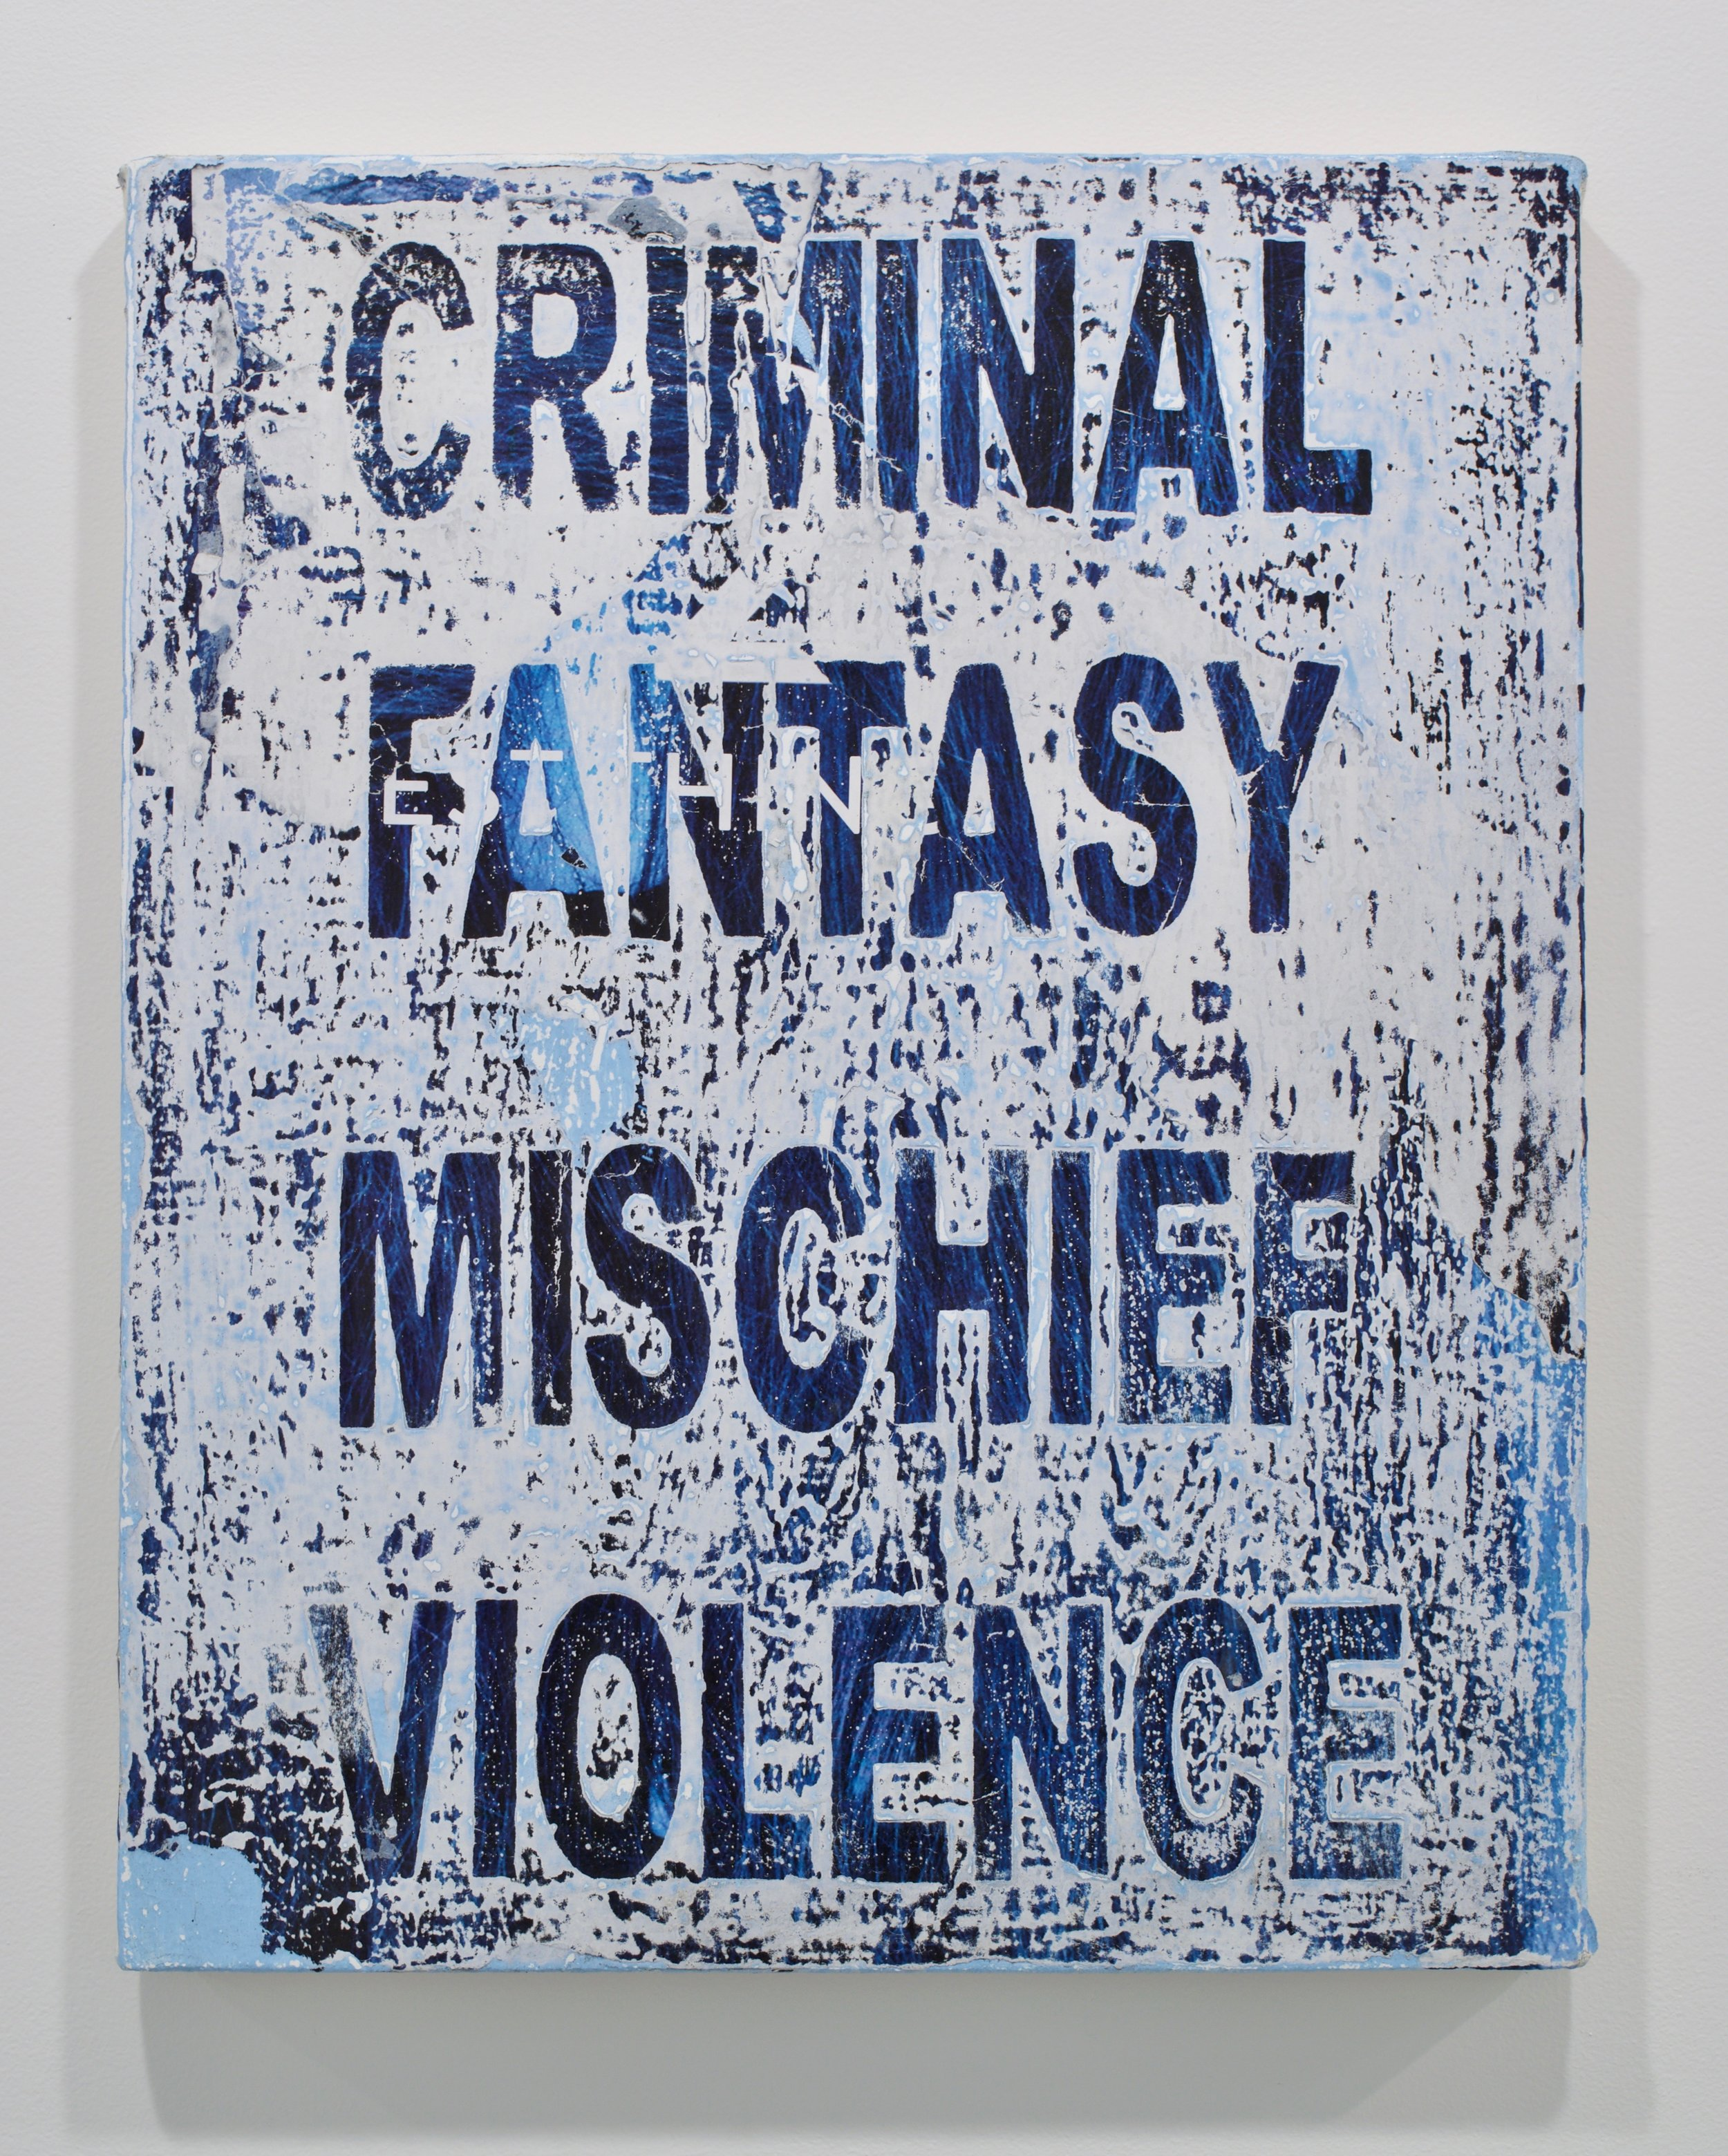 """Andrew Laumann, """"Symptoms (Criminal Mischief, Fantasy Violence)"""", 2017. Methylcellulose, acrylic, paper on canvas mounted to wood panel, 20x16 in."""